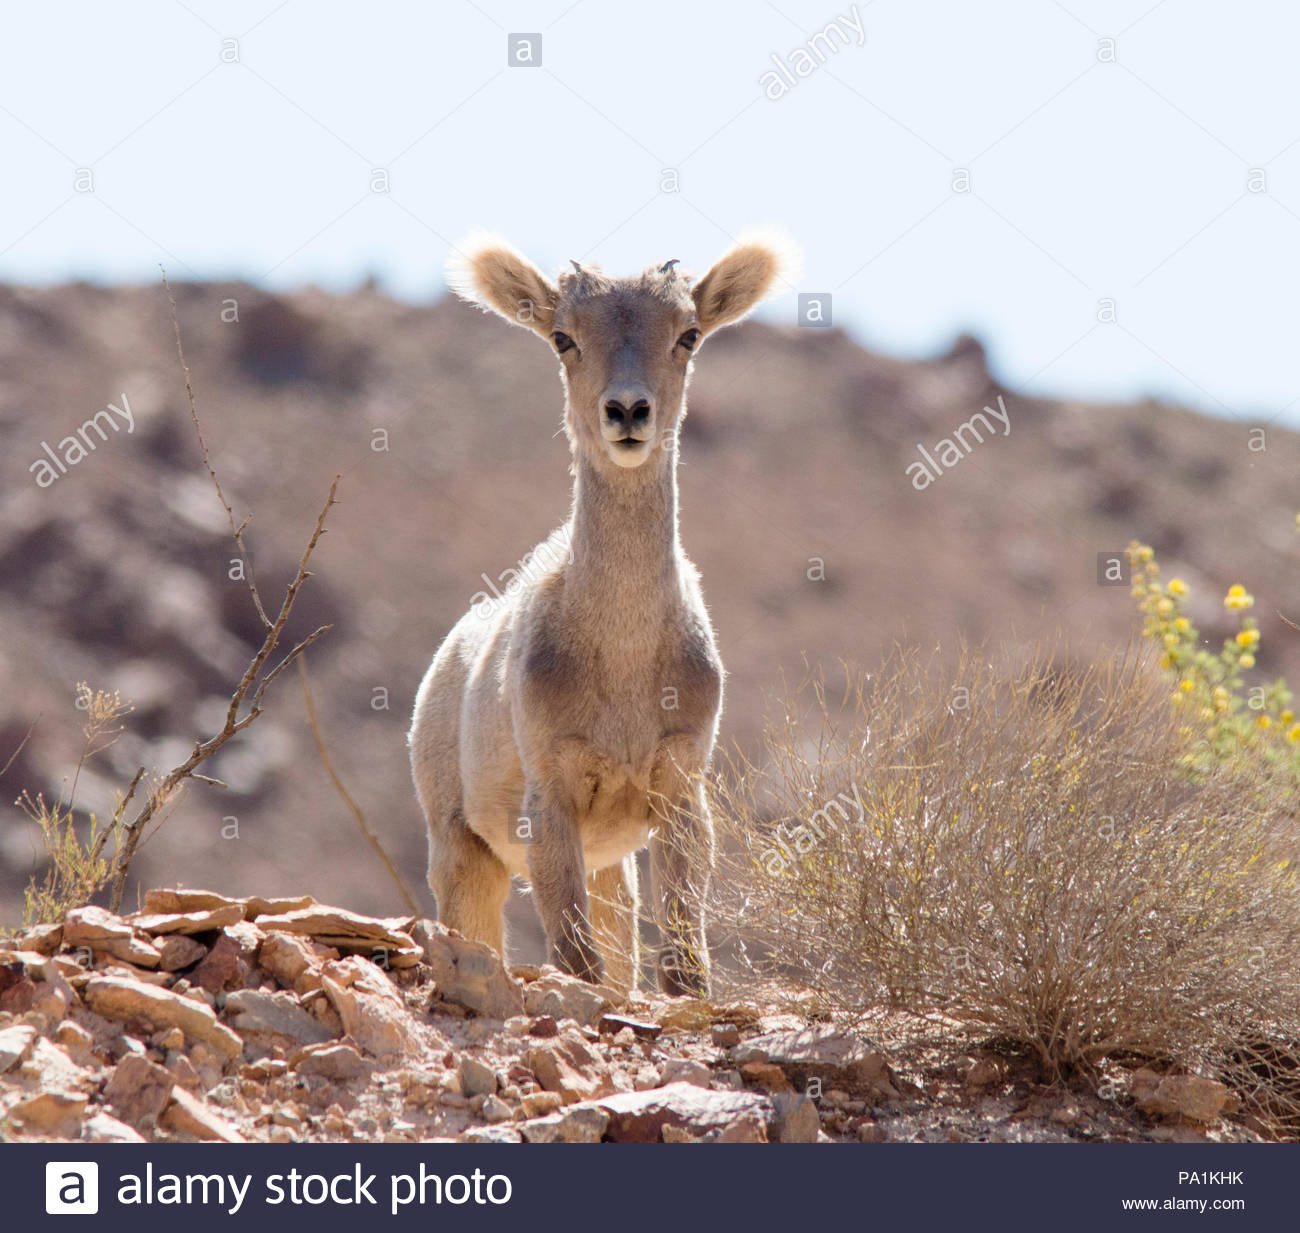 rocky-mountain-bighorn-ovis-canadensis-lamb-in-arizona-usa-PA1KHK.jpg